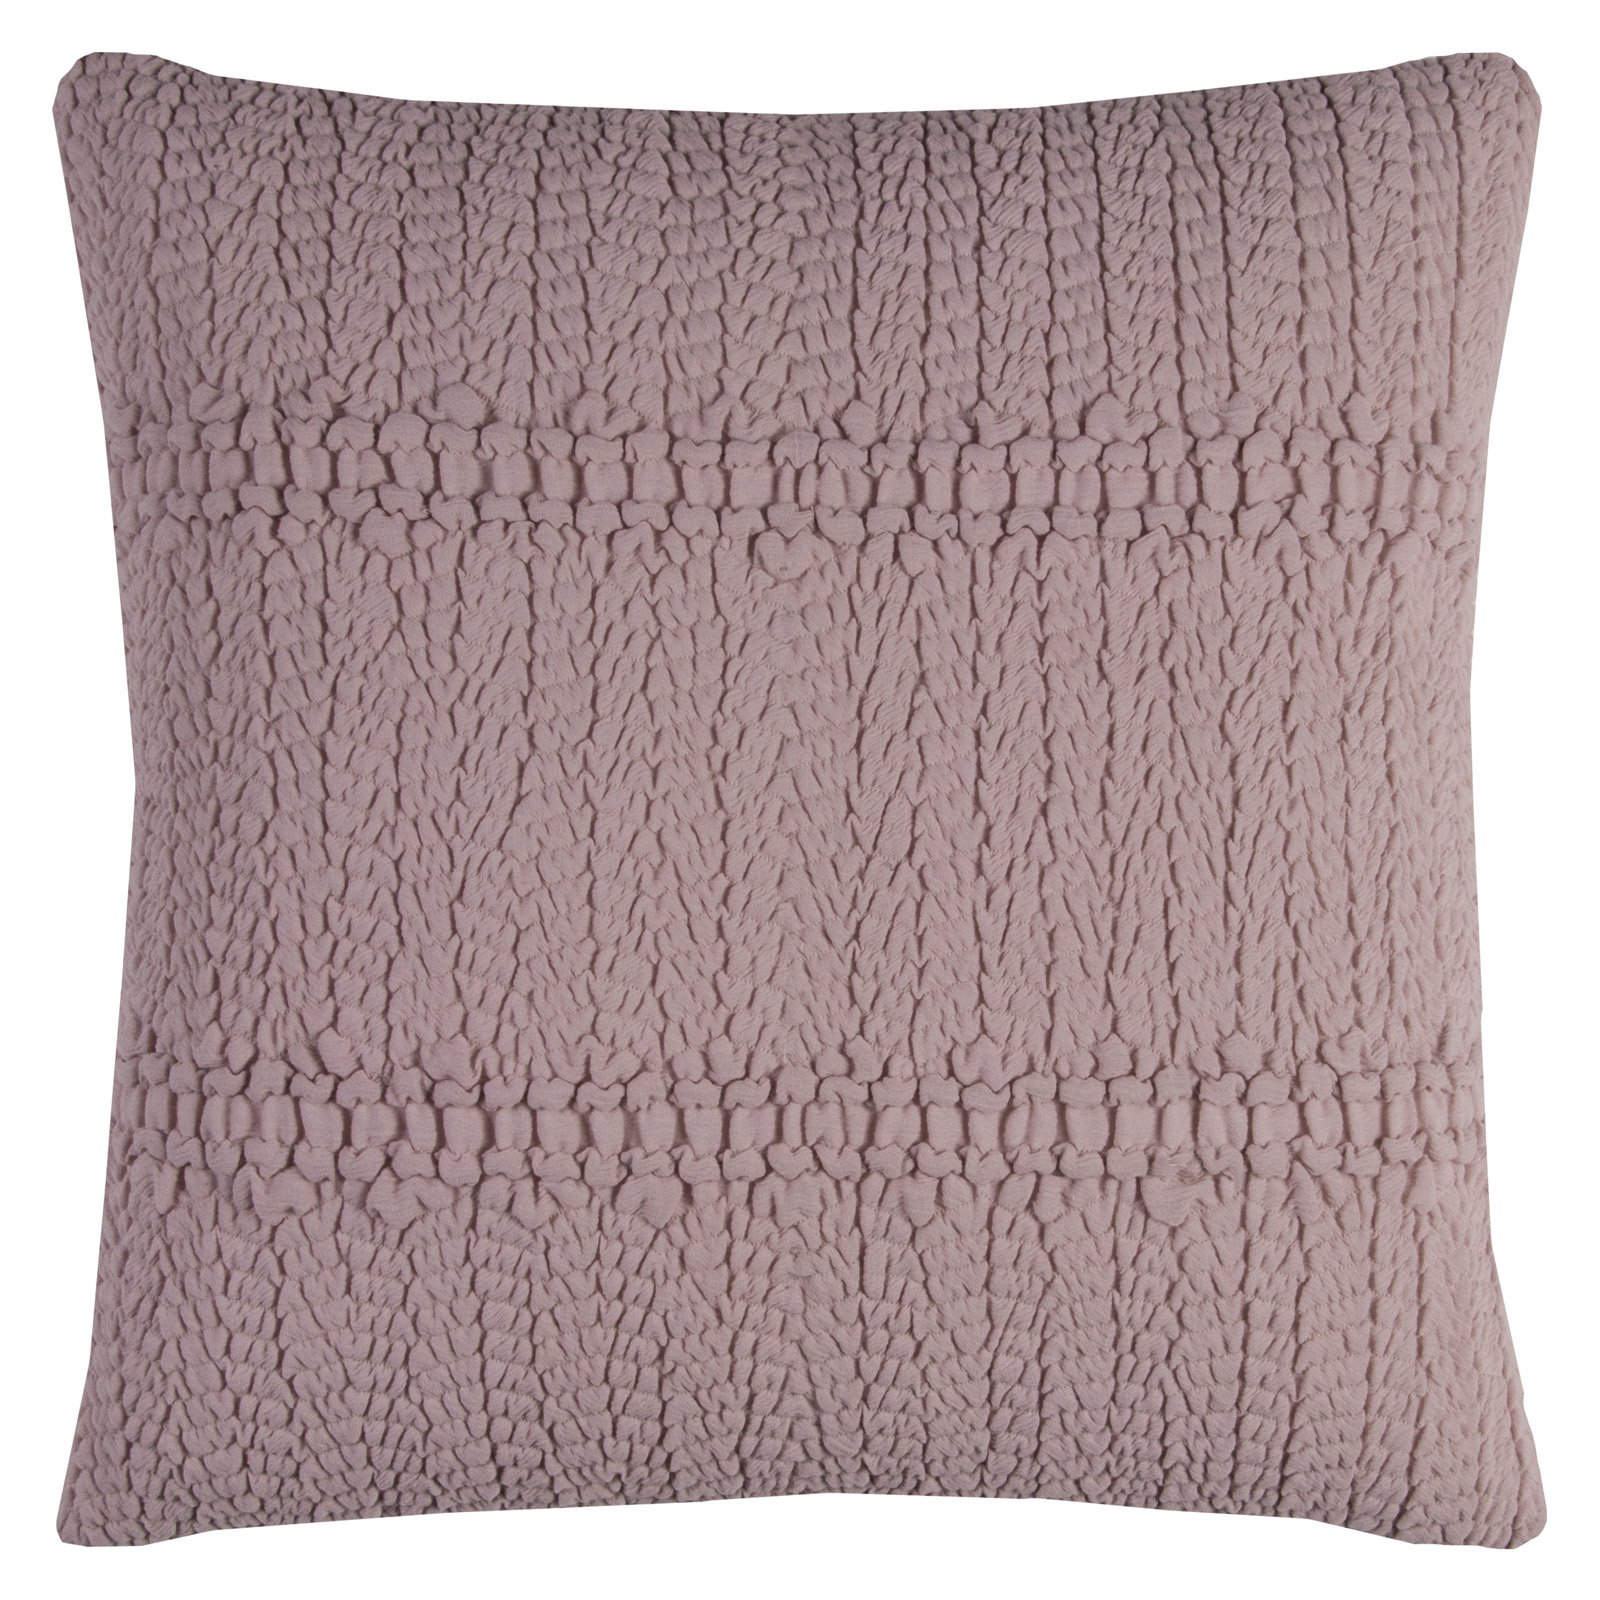 "Rizzy Home SHEERED TEXTURAL TECHNIQUE20"" x 20""Cottondecorative filled pillow"